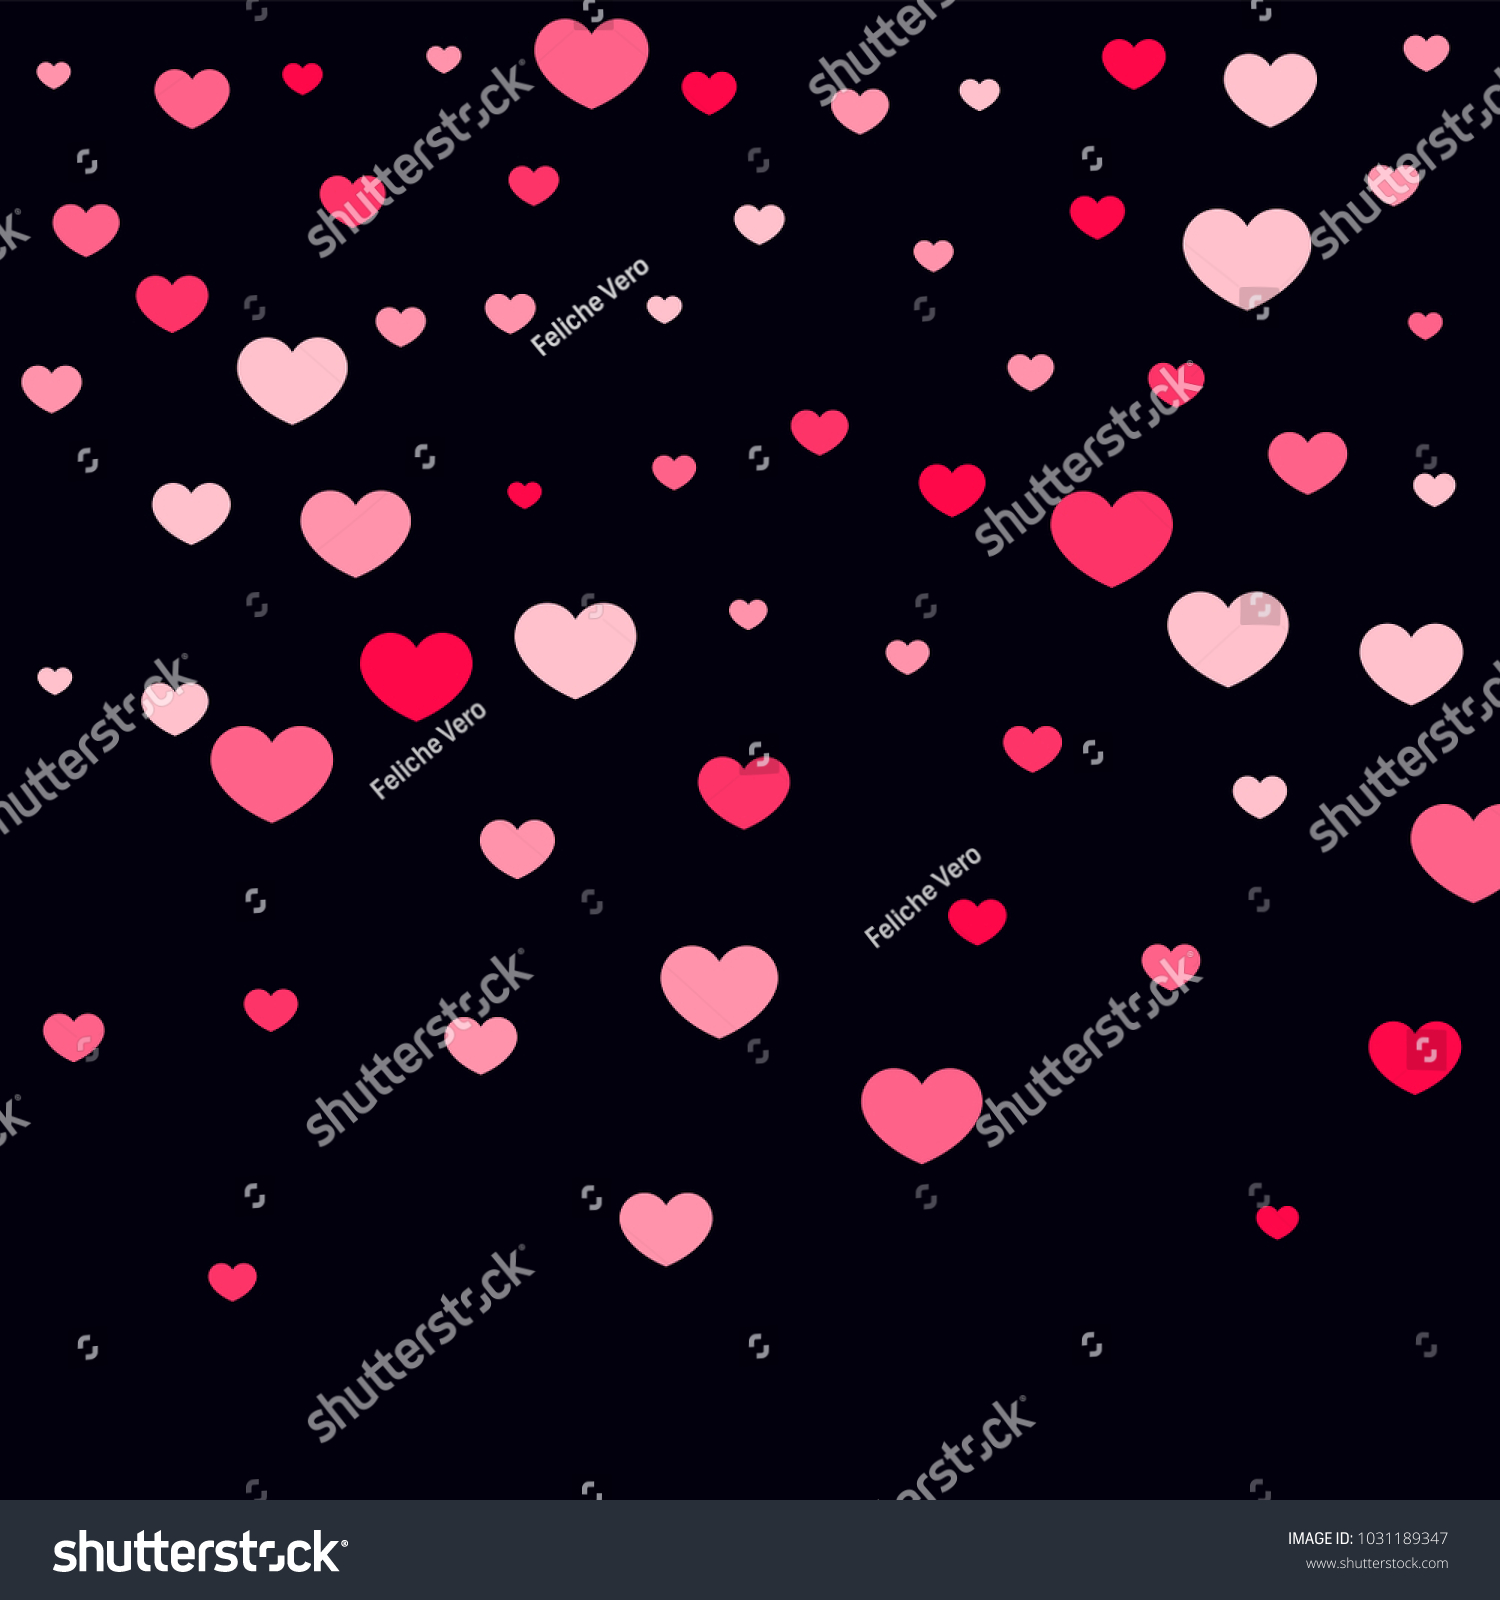 Pink Hearts Confetti Falling On Black Stock Vector Royalty Free 1031189347